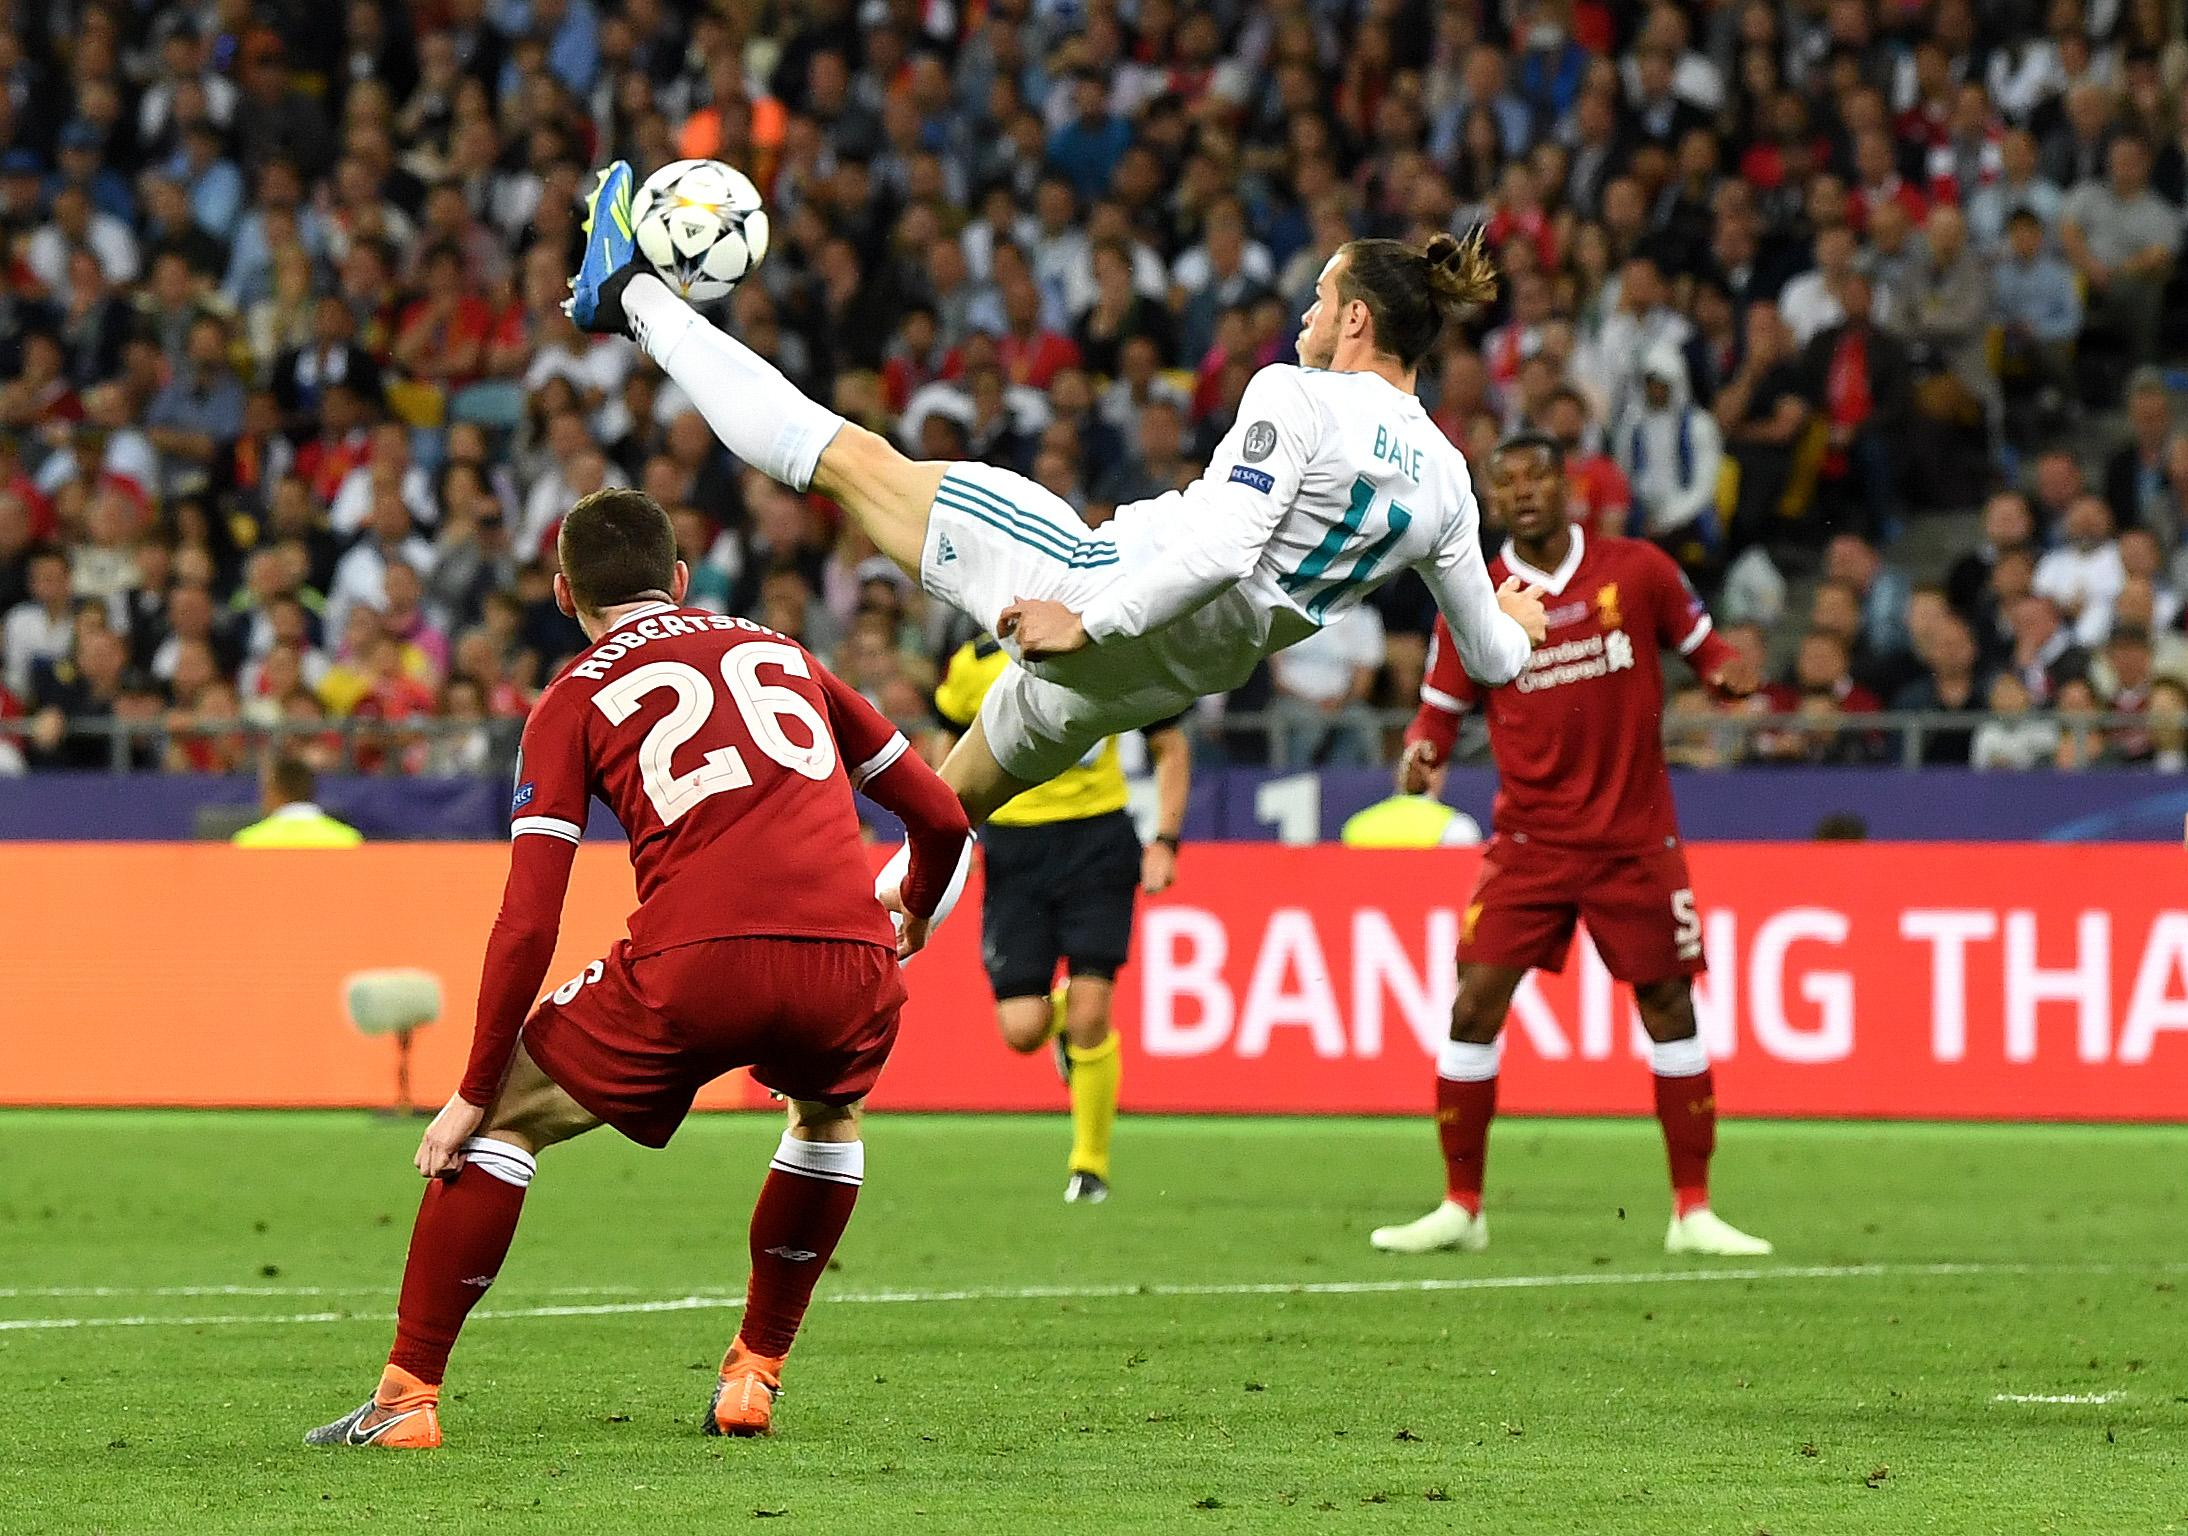 Gareth Bale scored twice in the Champions League final on Saturday, including this unbelievable strike